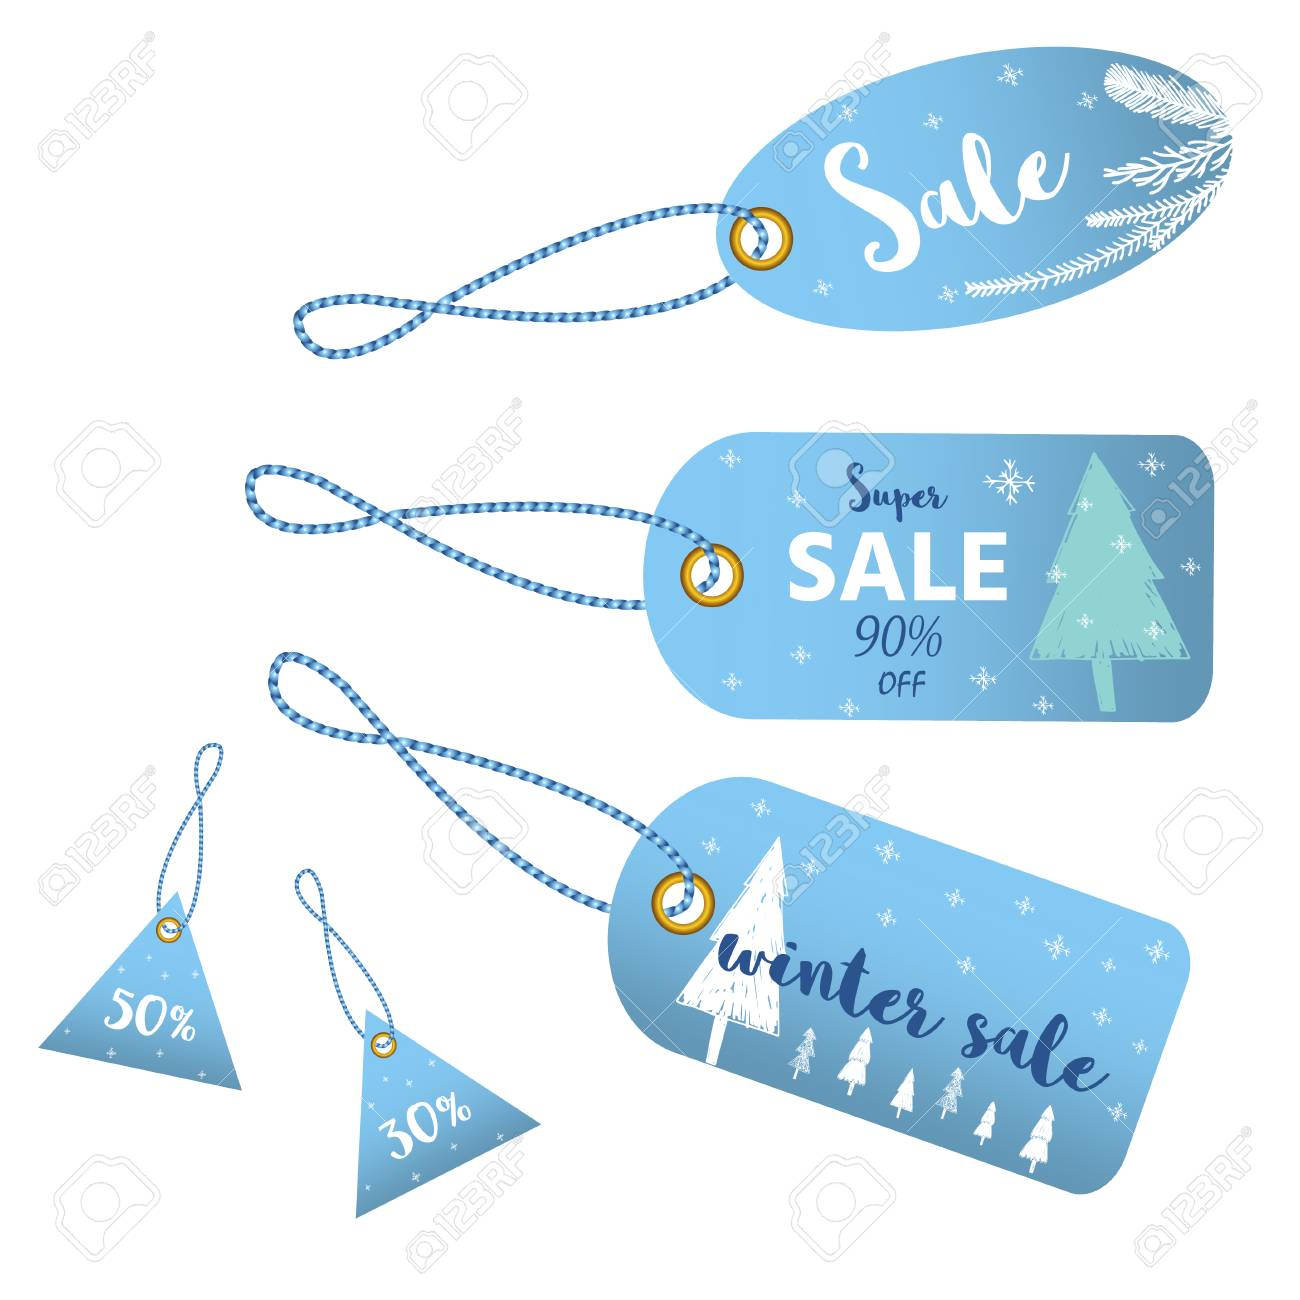 Winter Sale Banners Car Design Banners